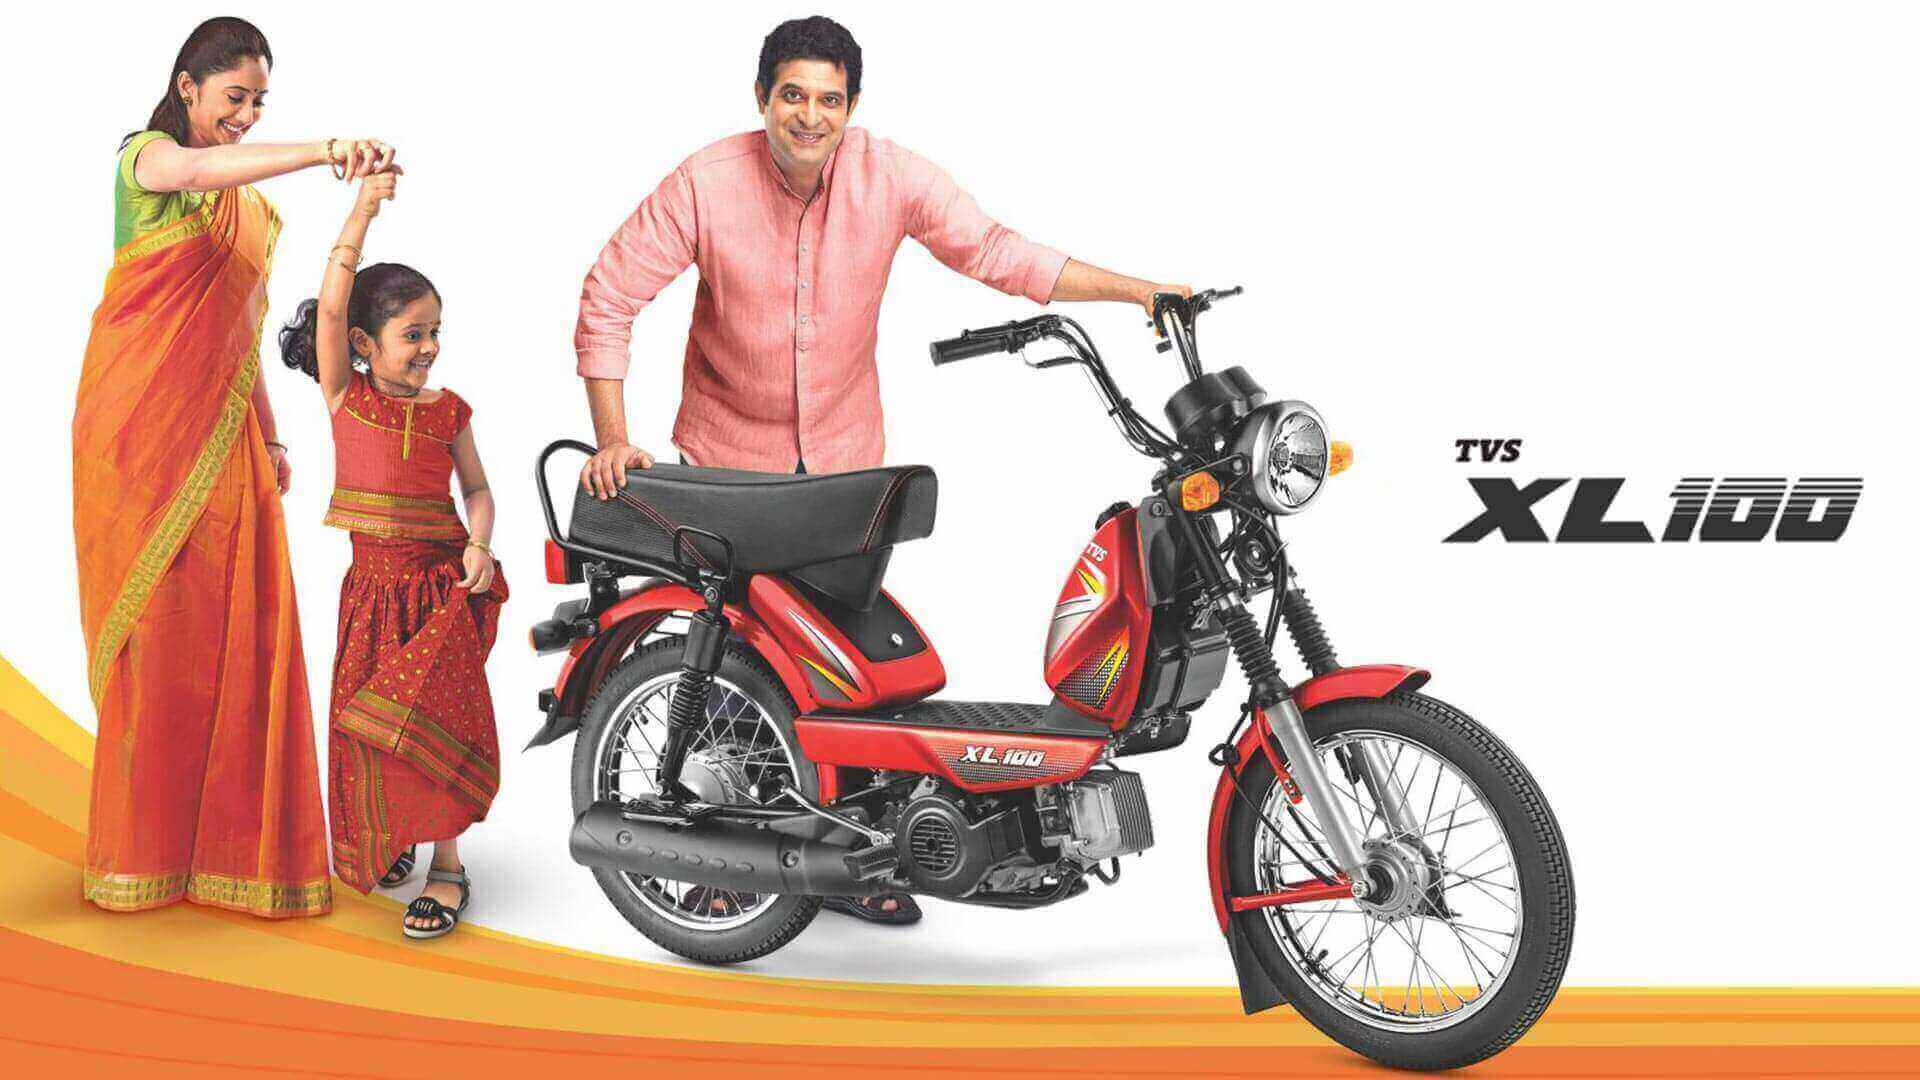 TVS XL 100 vehicle for family rides together